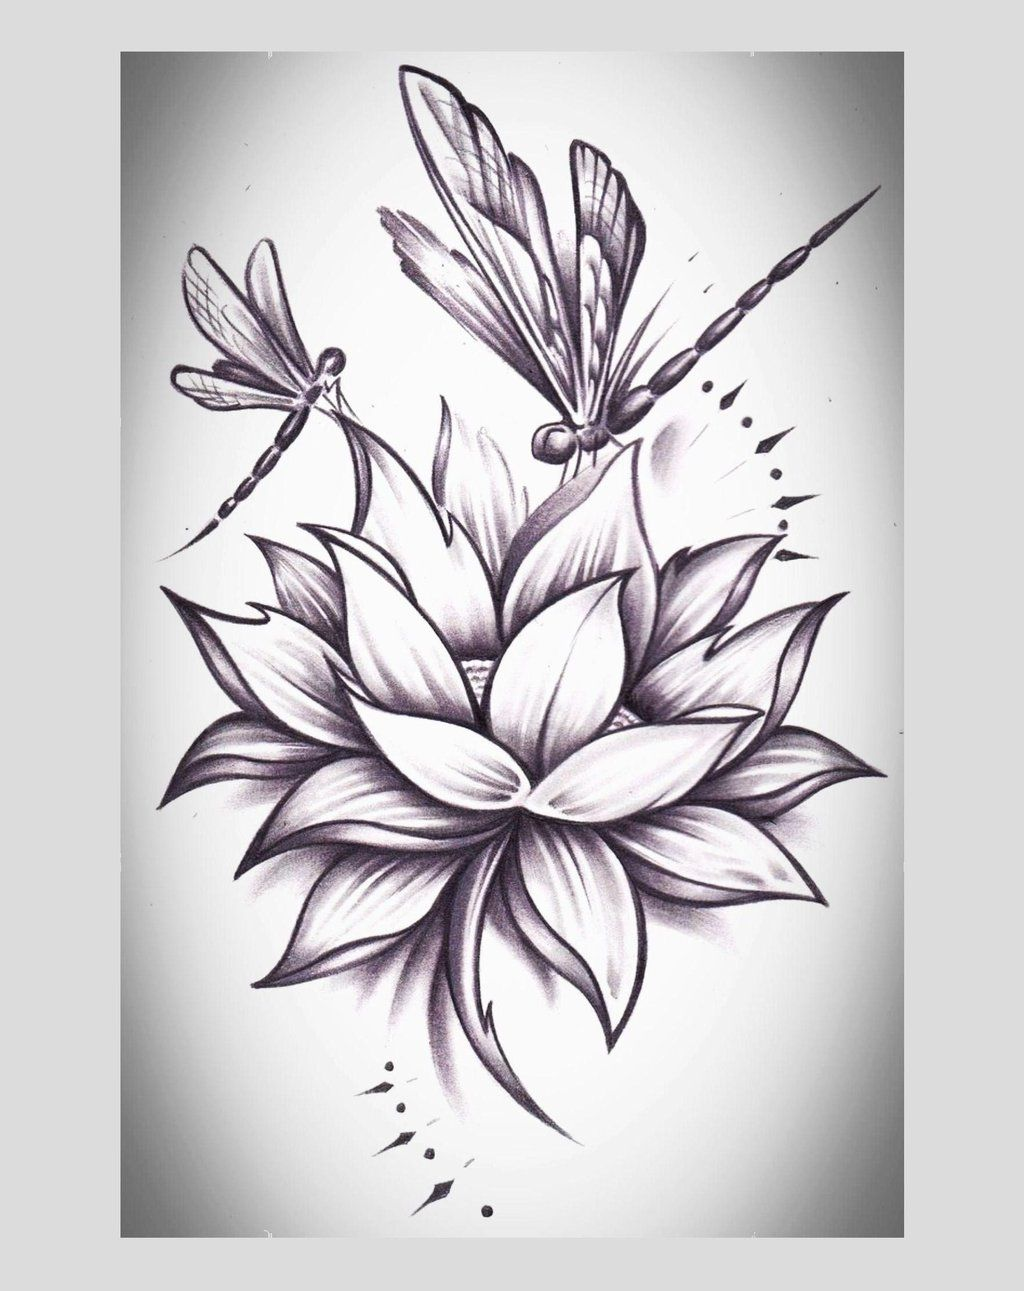 Dragonflys Lotus On Deviantart I Love The Lotus Could Do Without